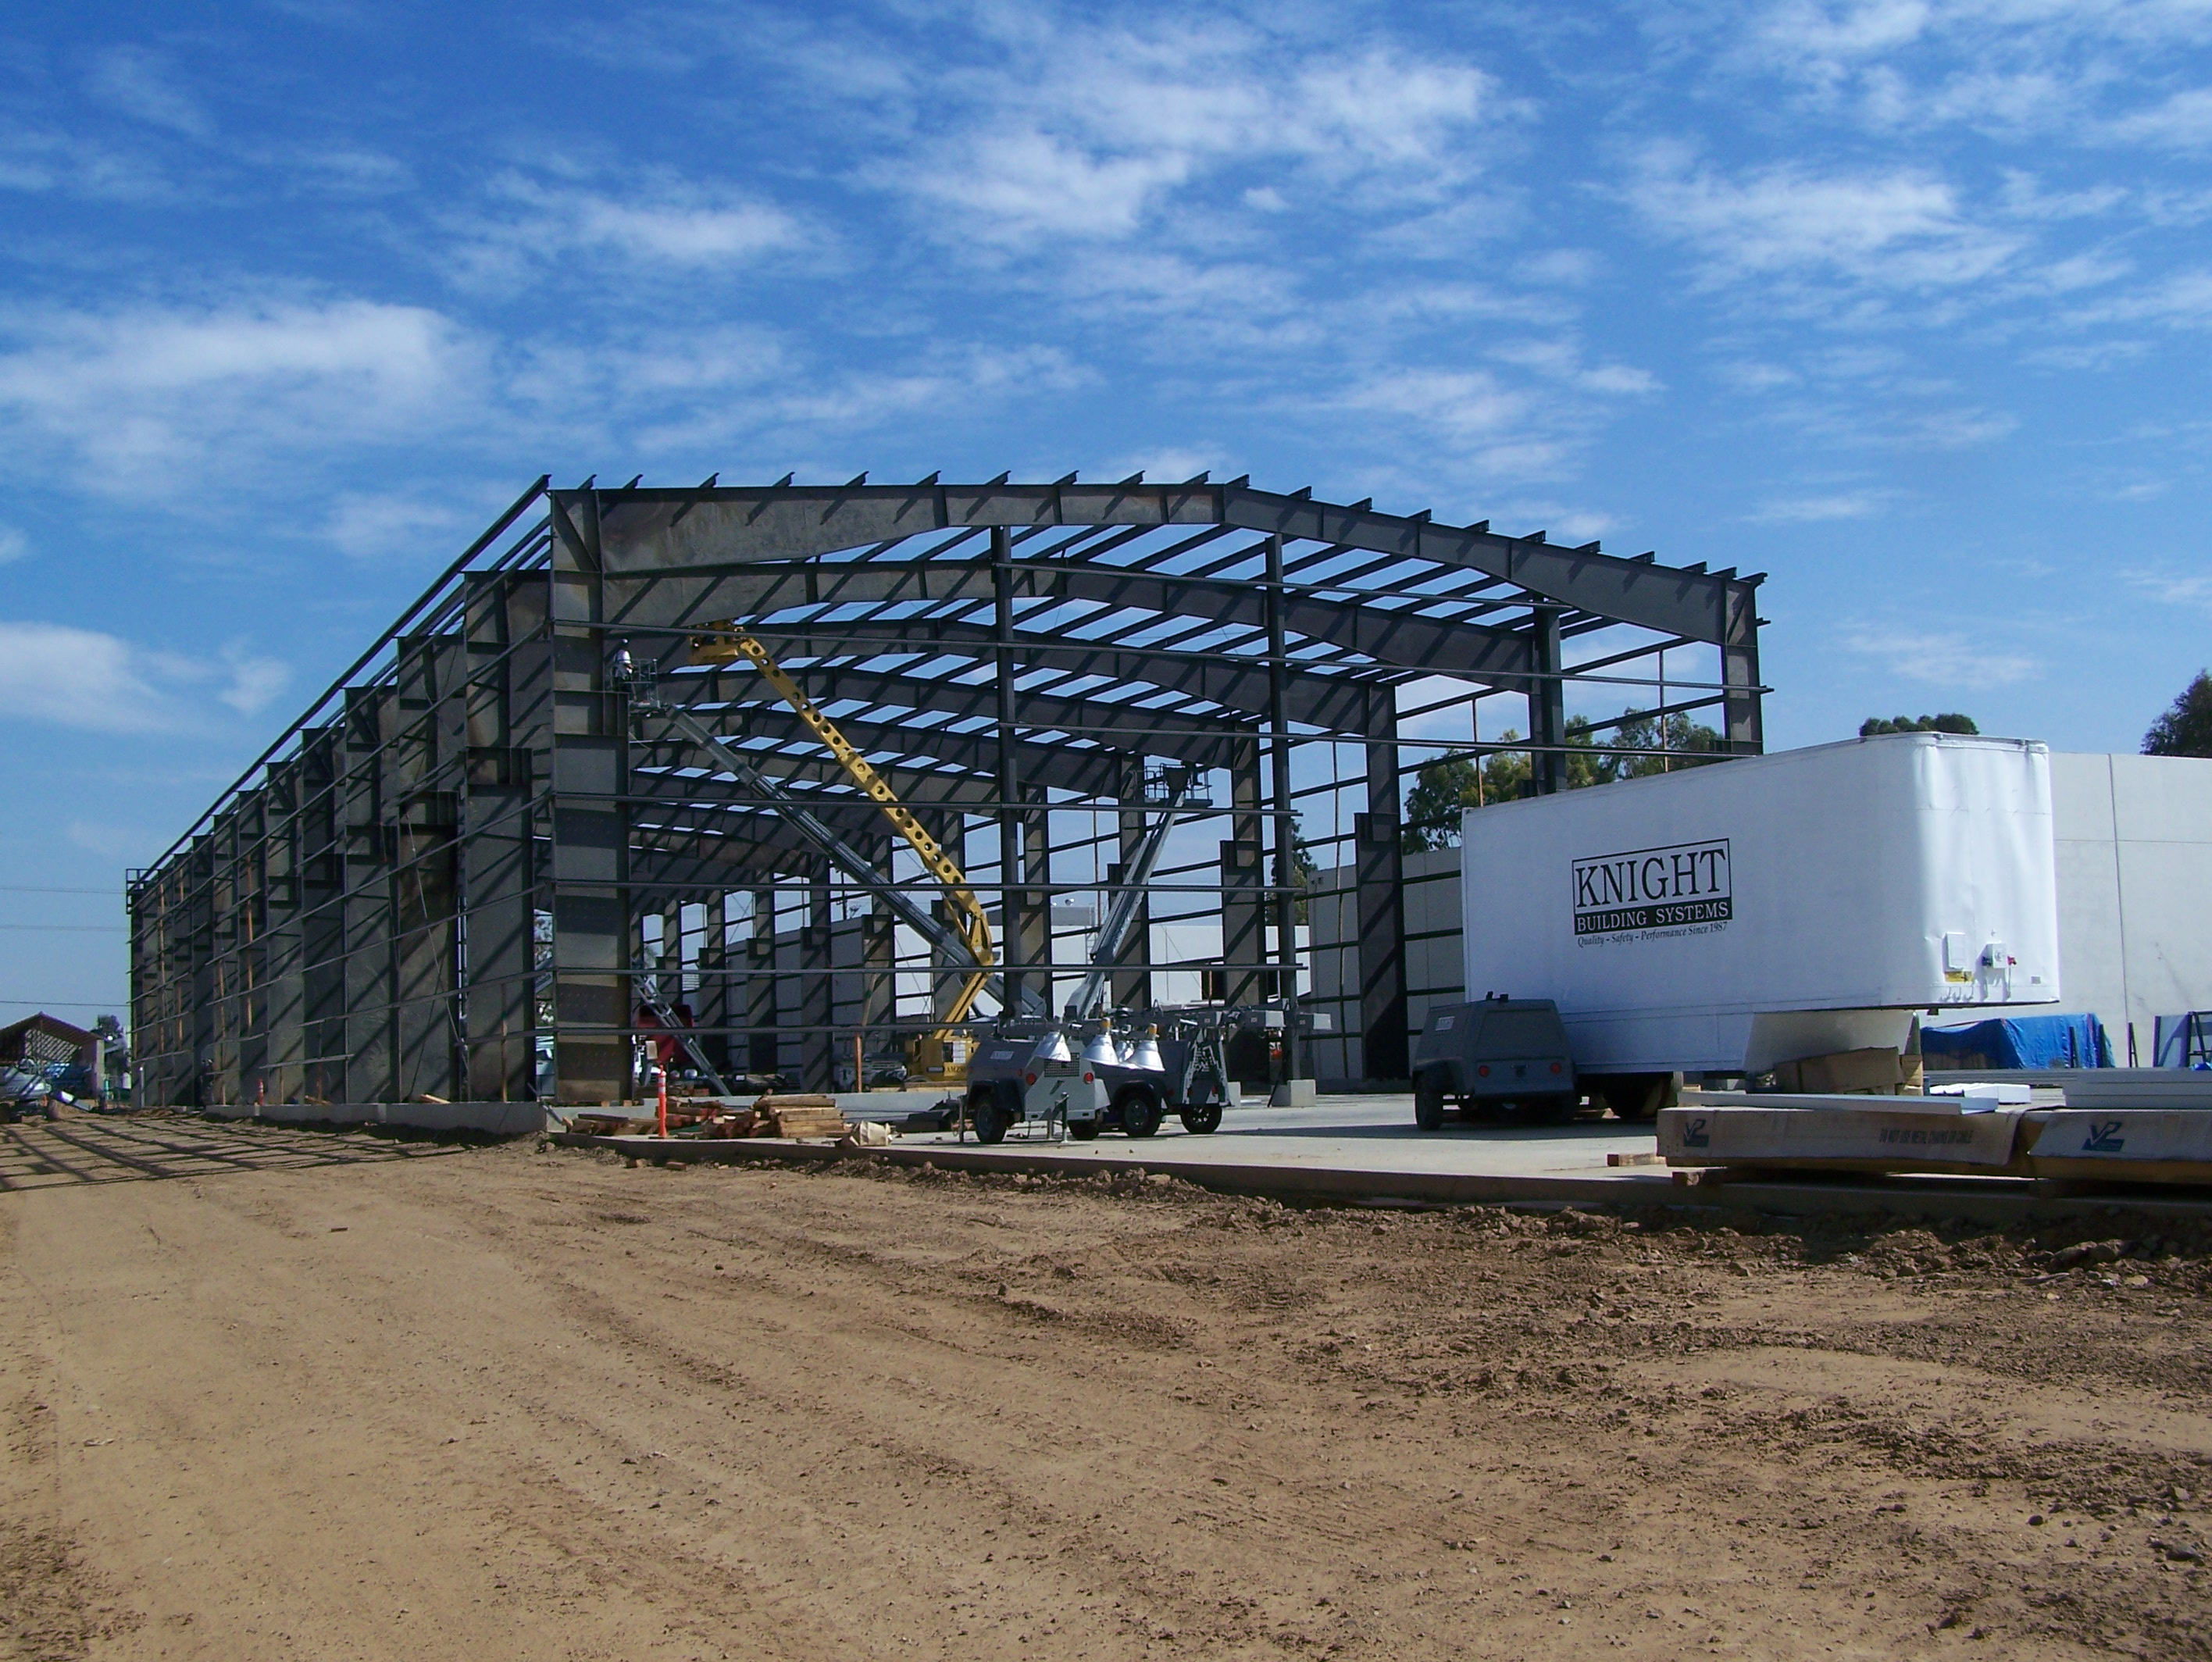 Structural Steel Erection - Knight Building Systems, Inc.